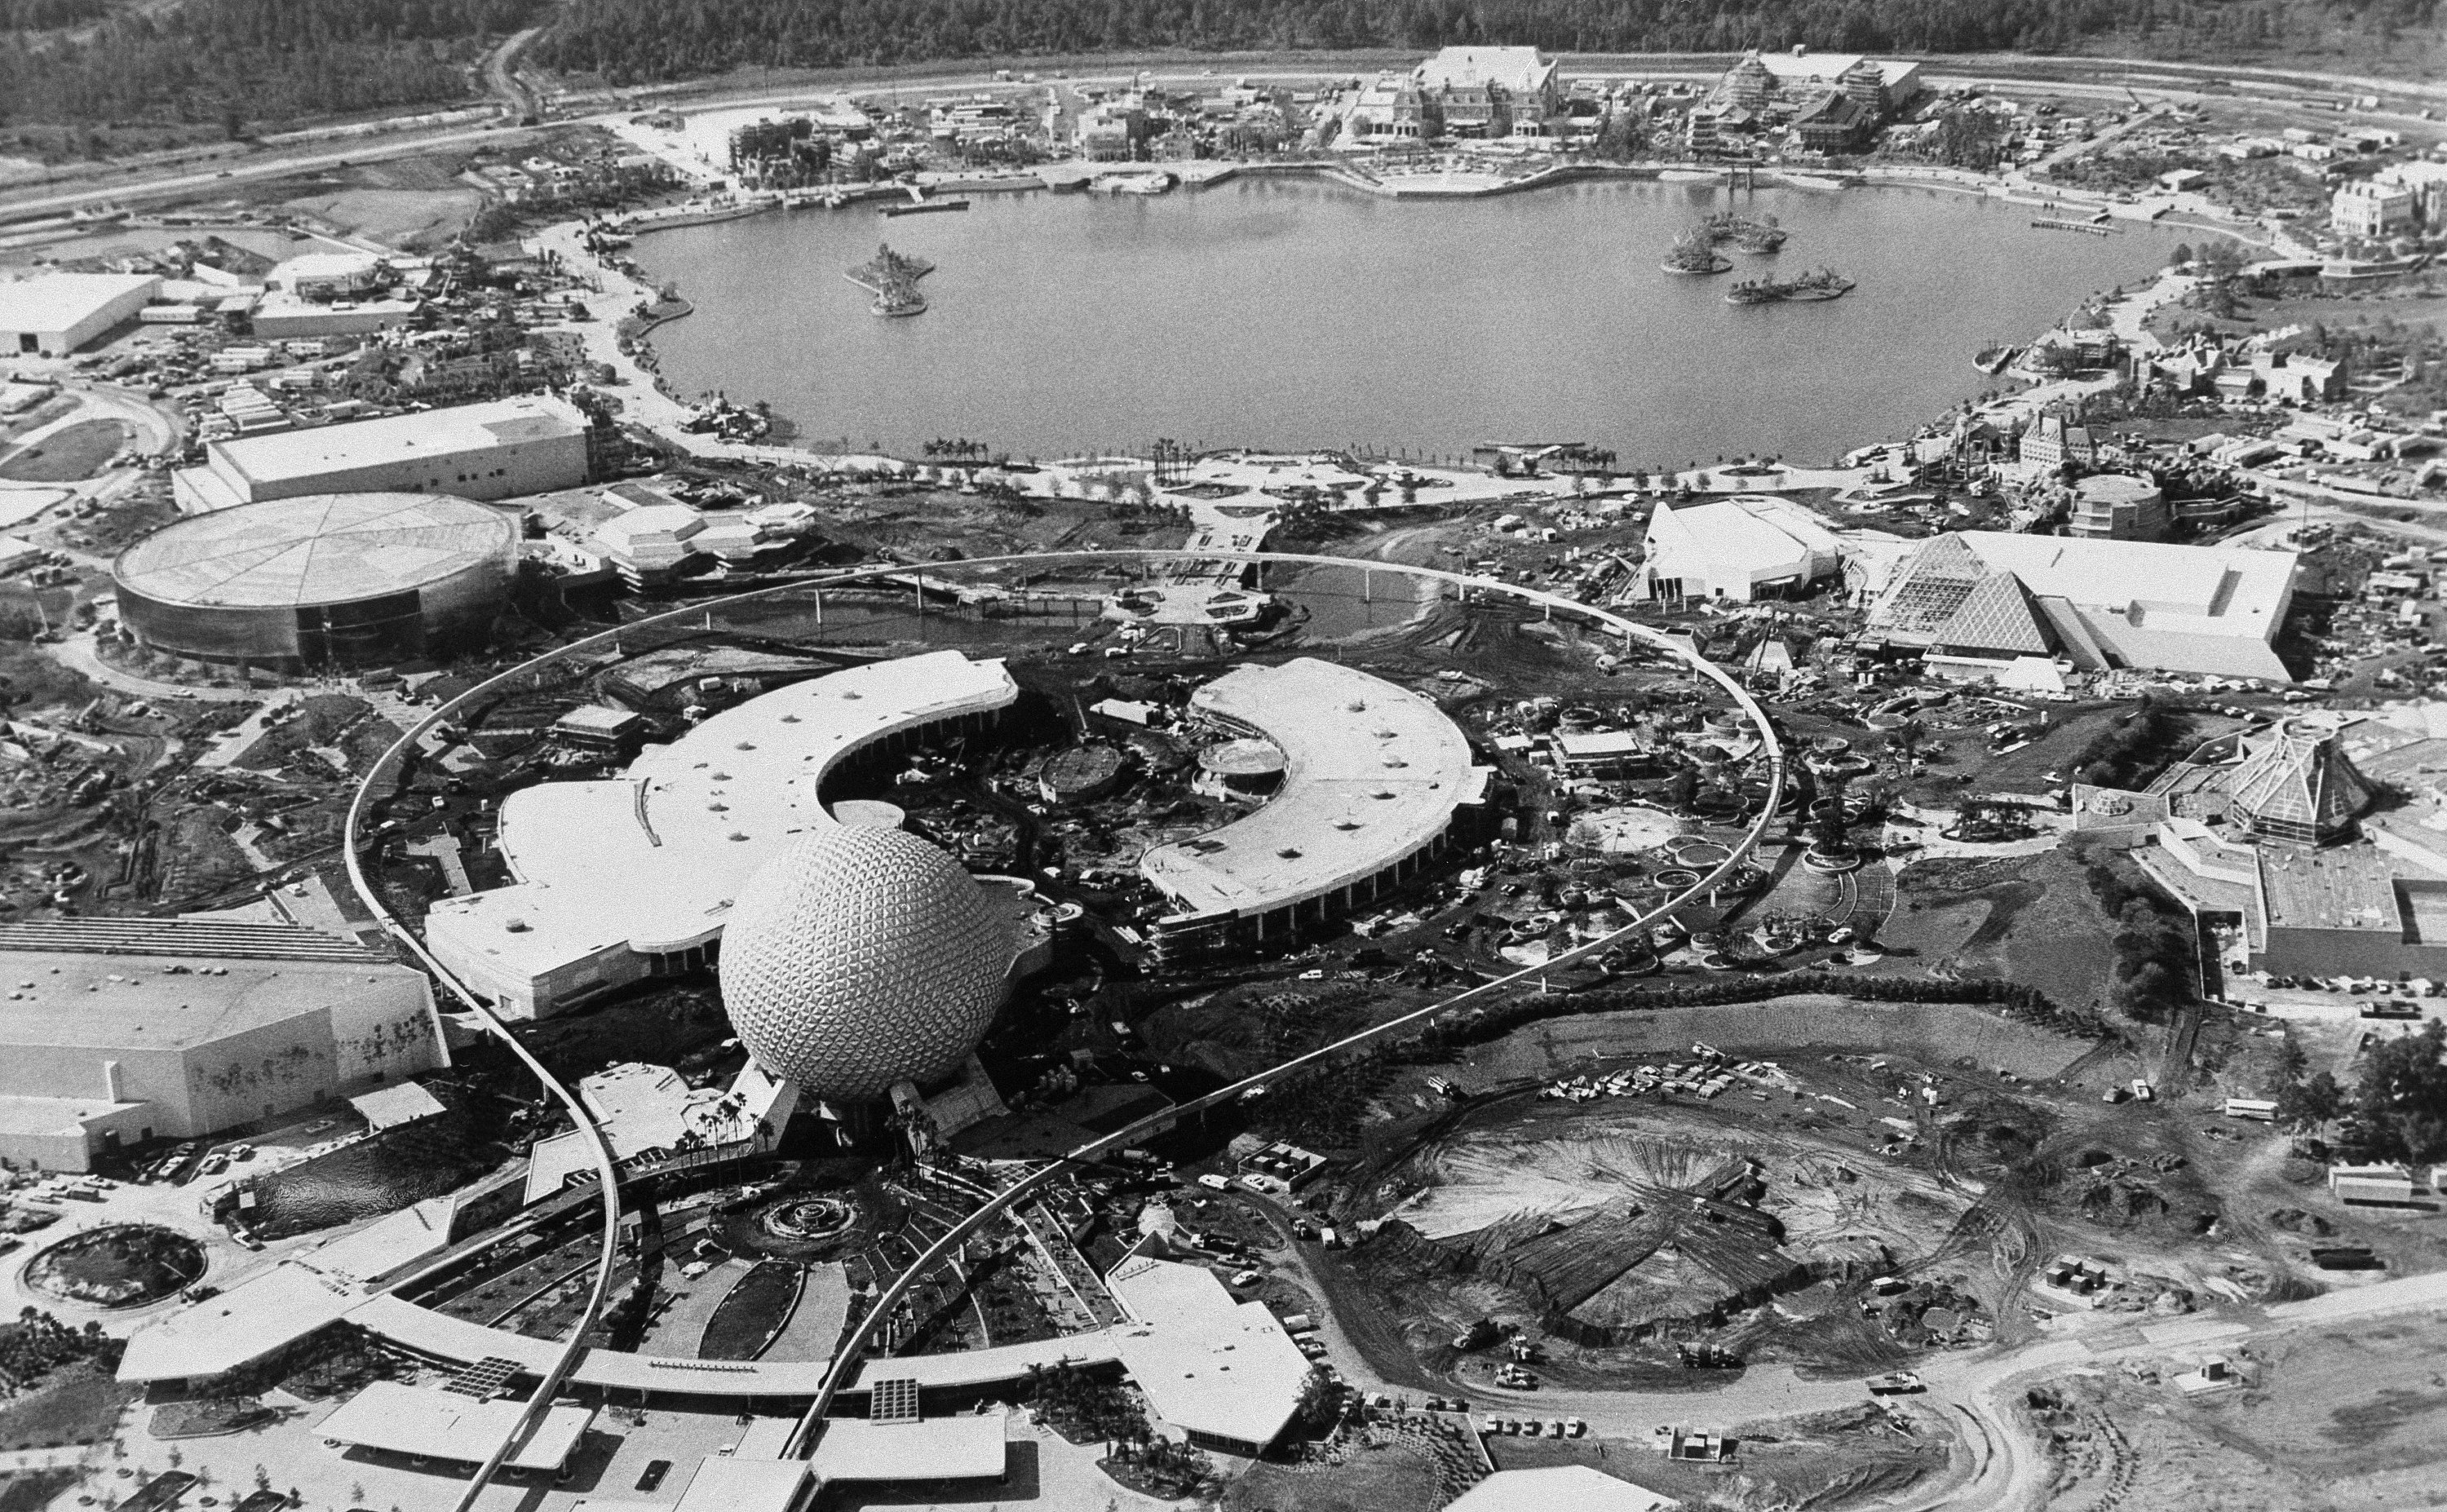 <div class='meta'><div class='origin-logo' data-origin='none'></div><span class='caption-text' data-credit='AP Photo/Scott Maclay'>EPCOT Center, Walt Disney World's $800 million international showcase at Orlando, continues progress towards a grand opening is shown July 20, 1982.</span></div>